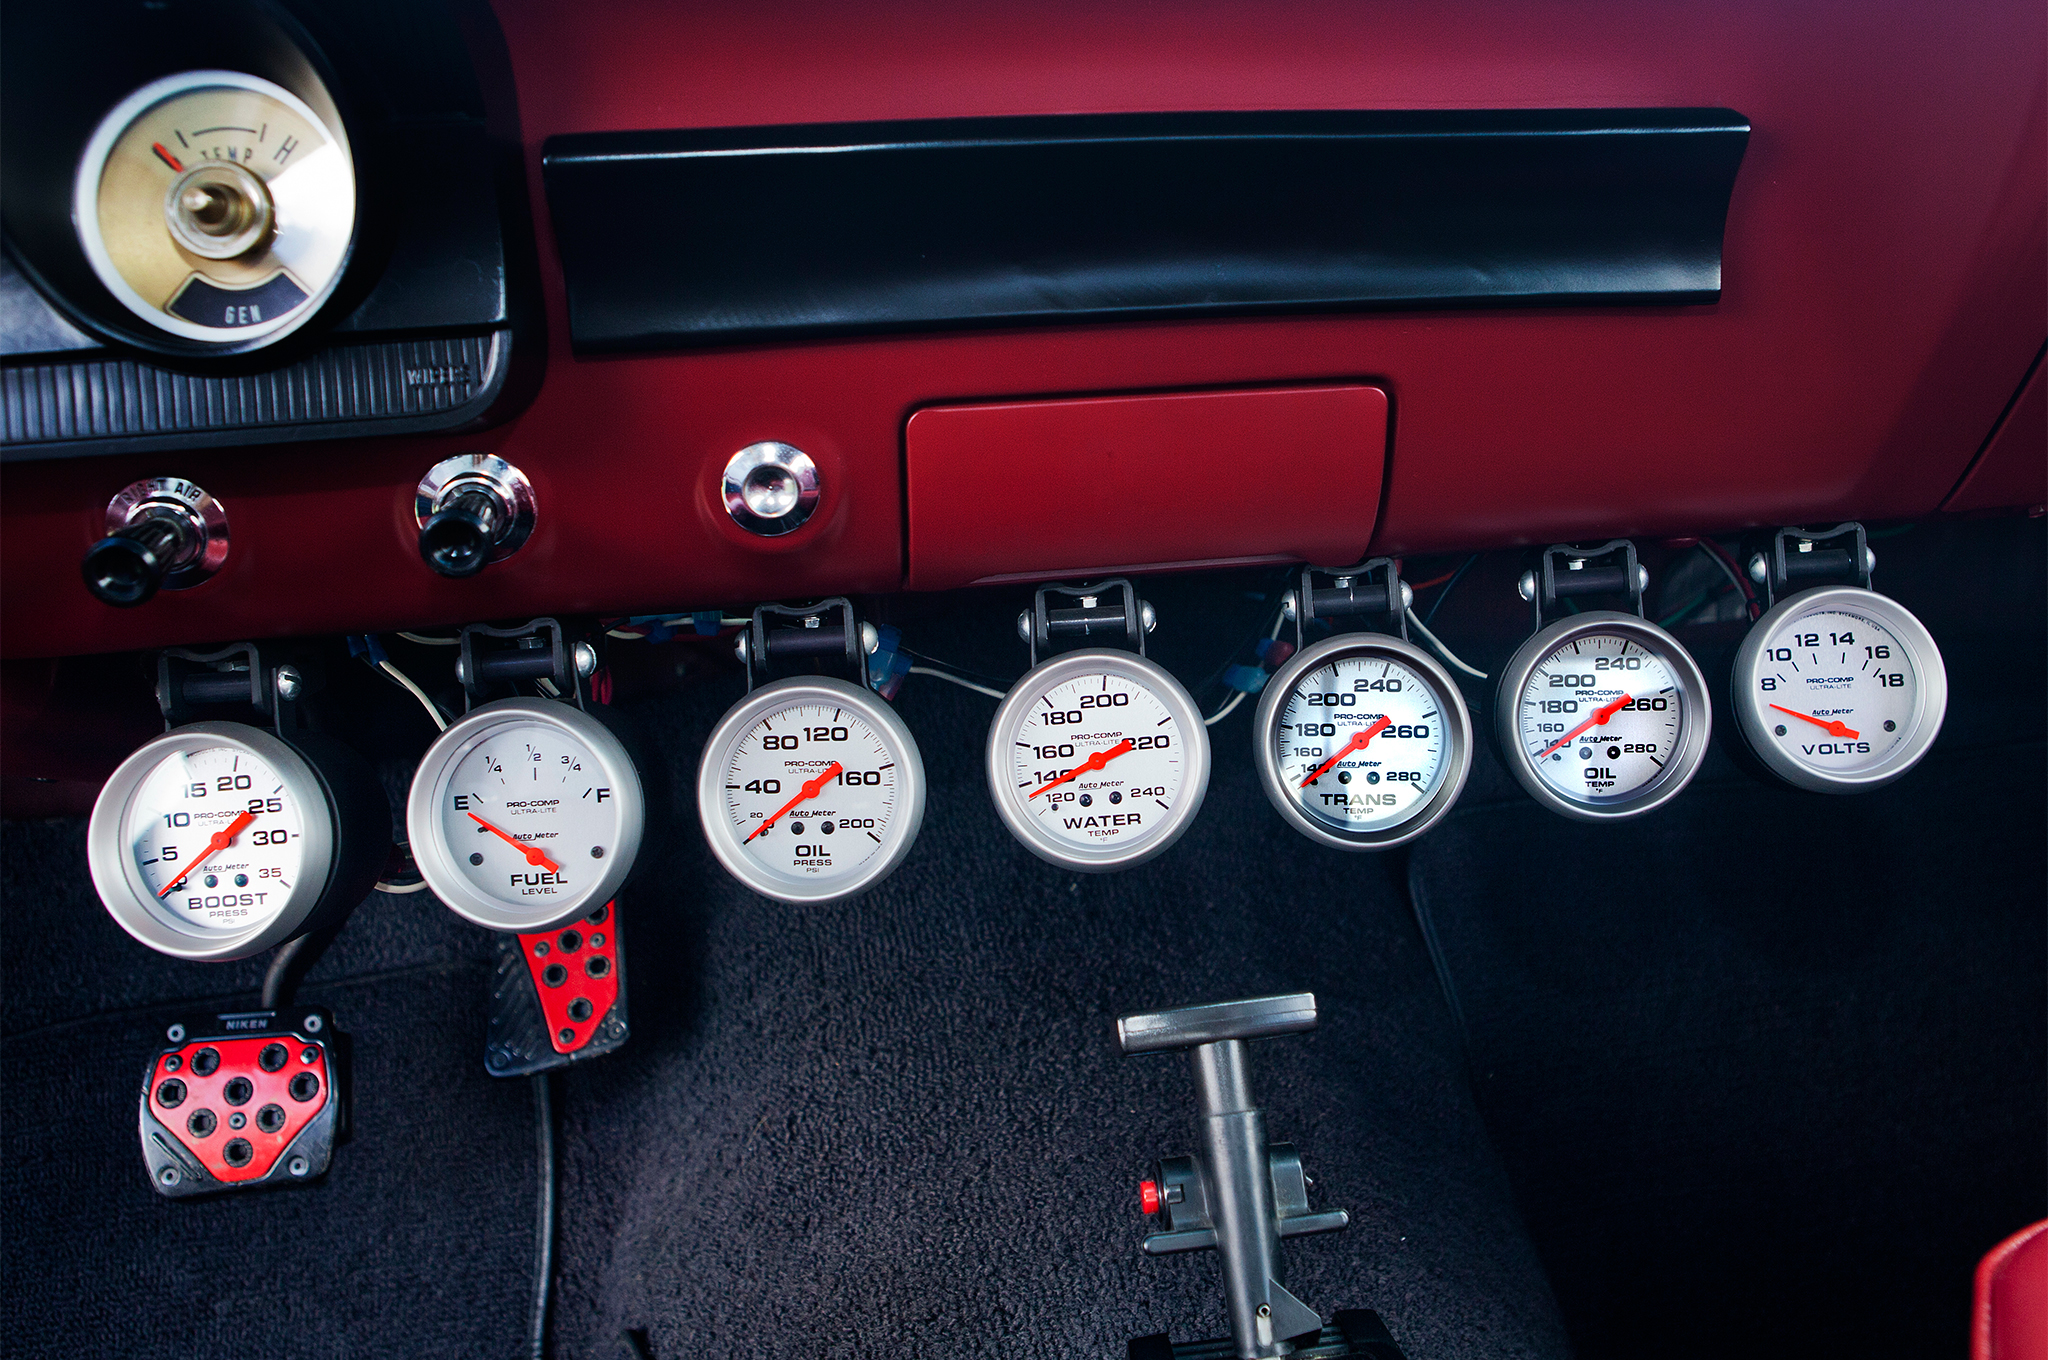 When you've got that much going on under the hood, it never hurts to have accurate gauges to keep tabs on—well, pretty much everything.